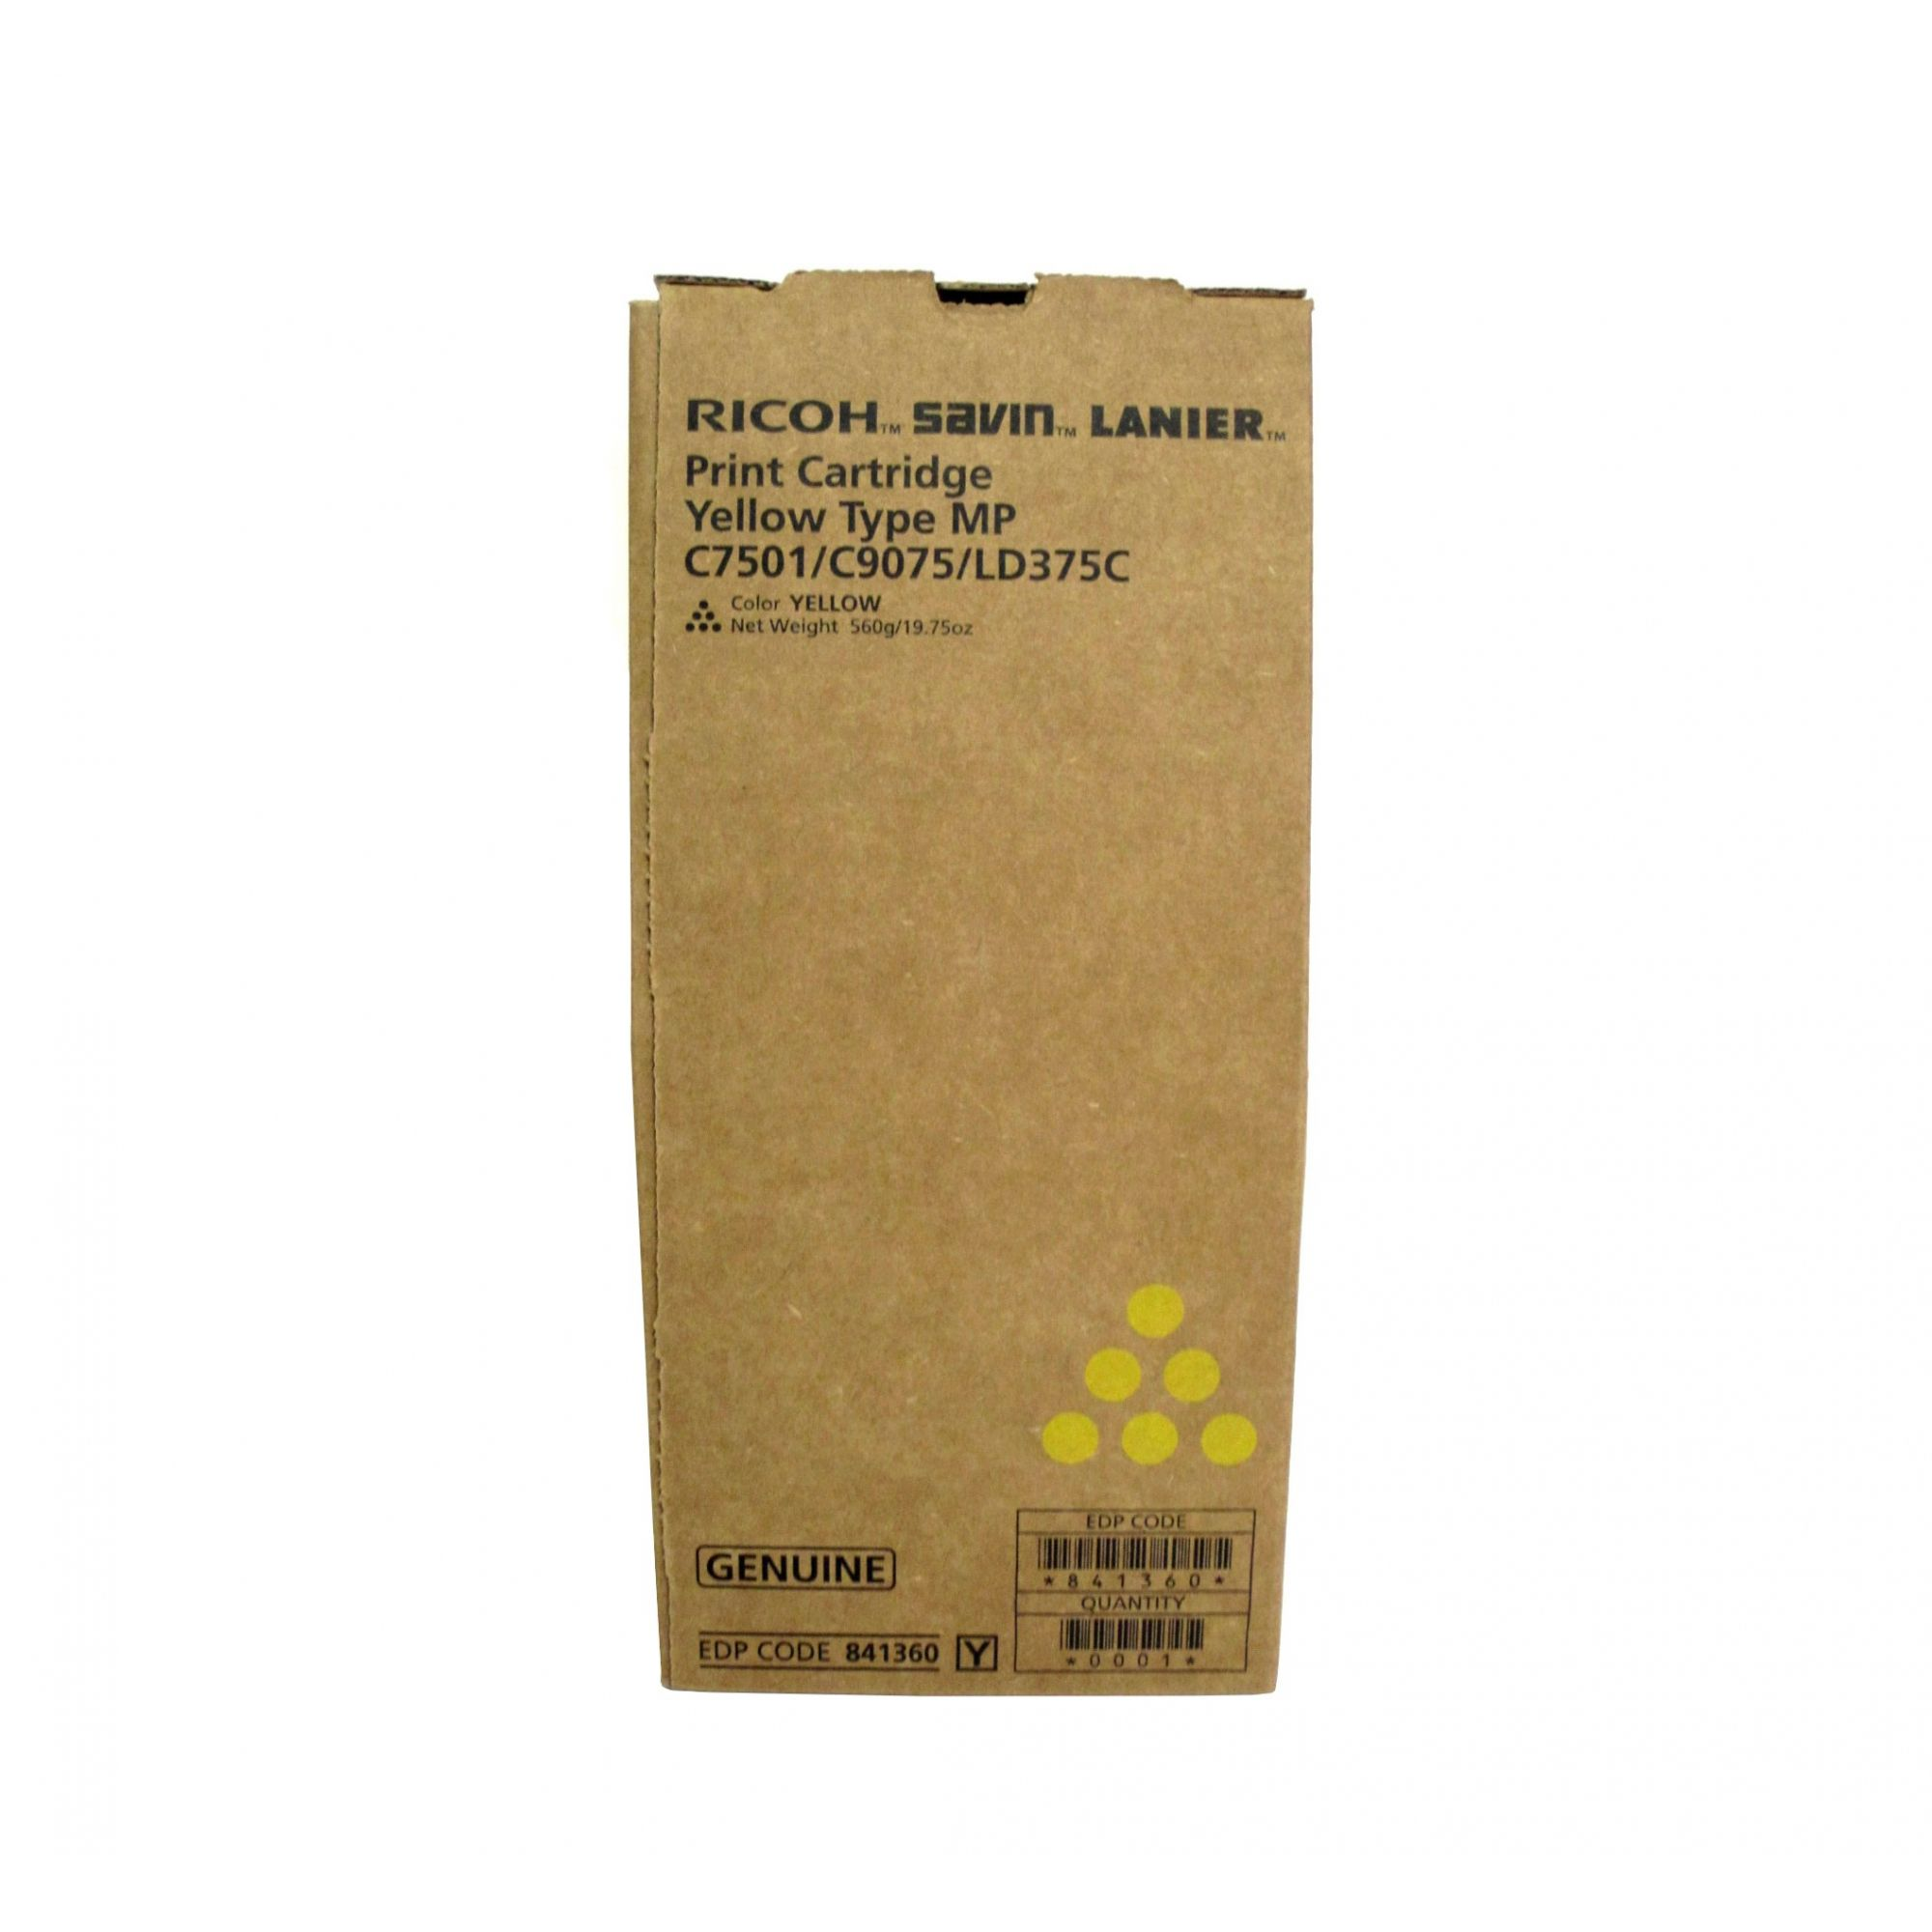 Toner Ricoh MPC 6501/ Ricoh MPC 7501 - Yellow - Original (841360)